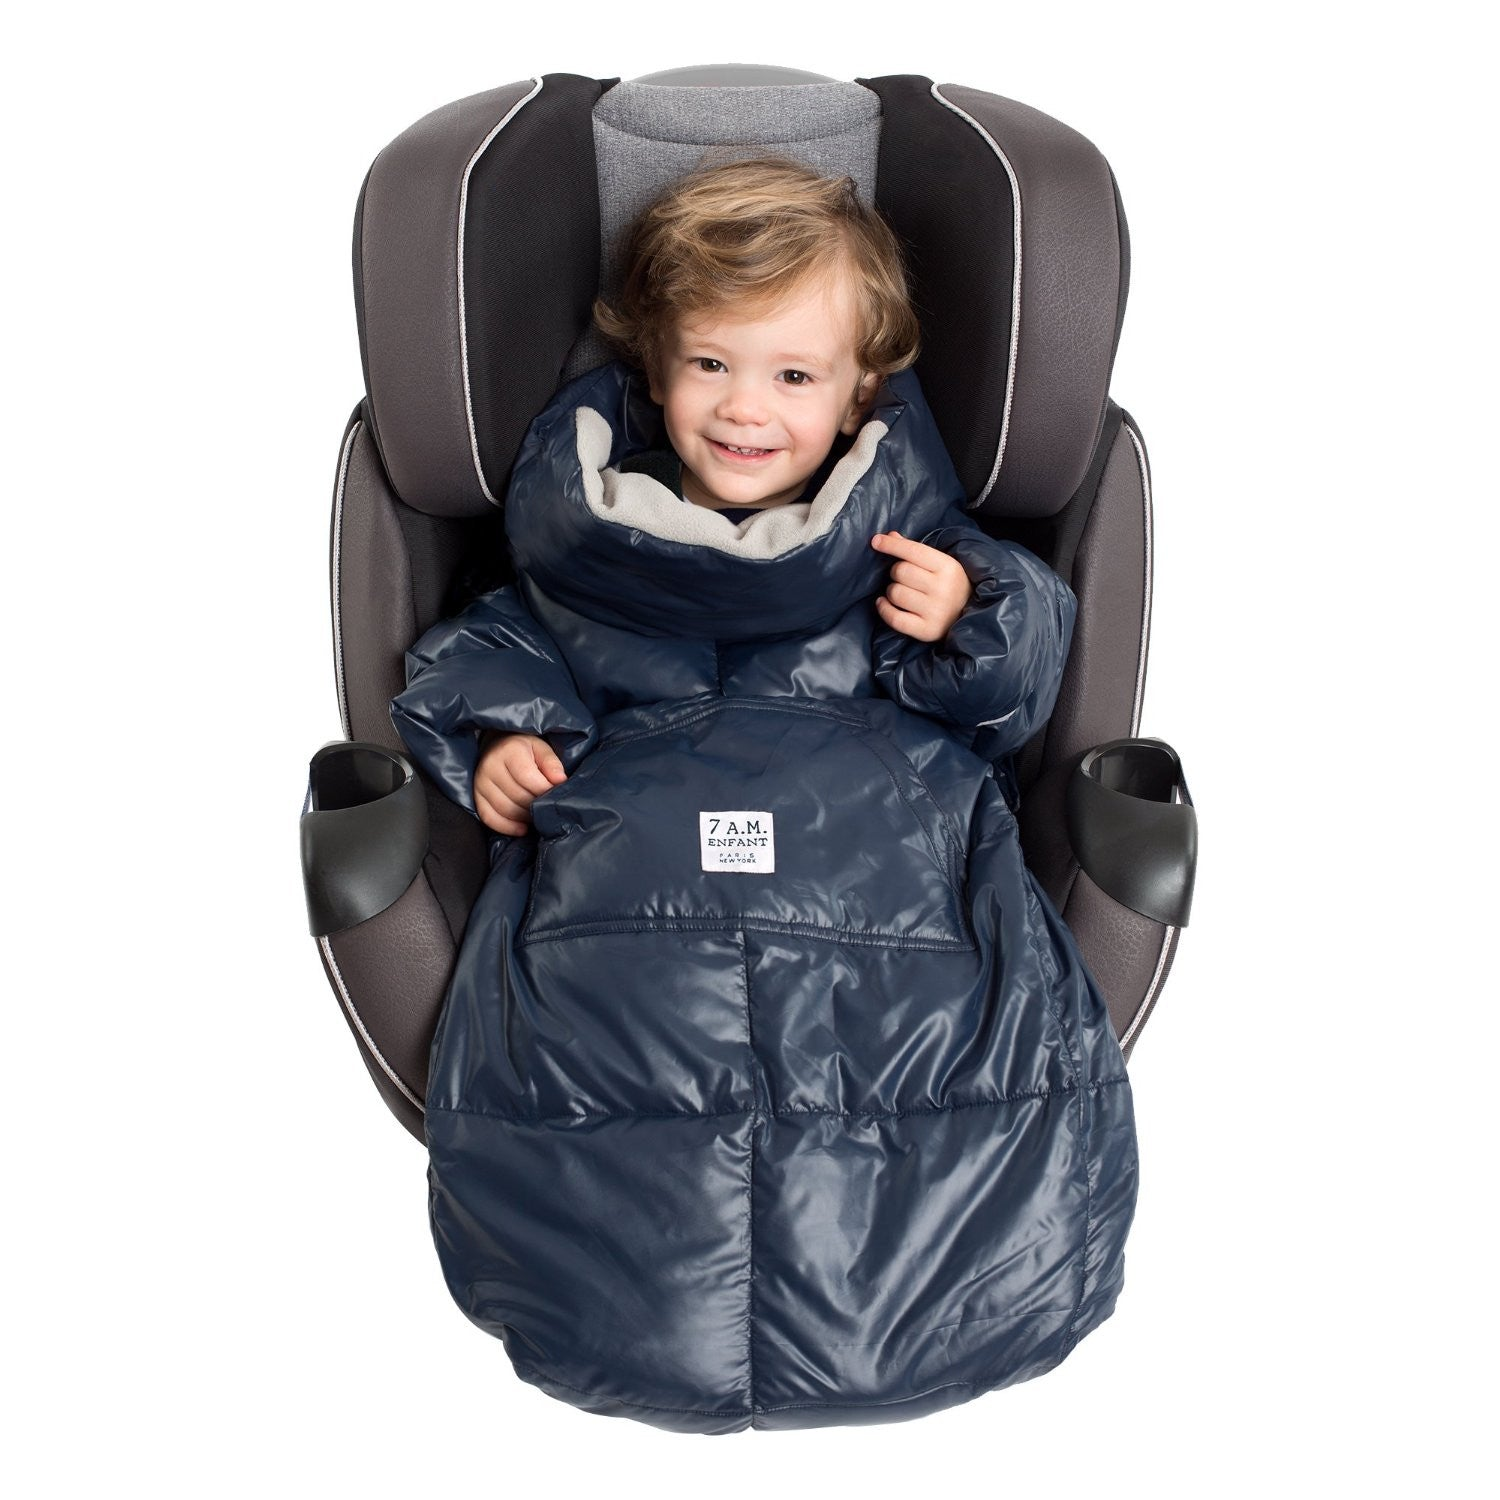 7 A.M. Enfant Easy Cover - Quilted - Little Folks NYC